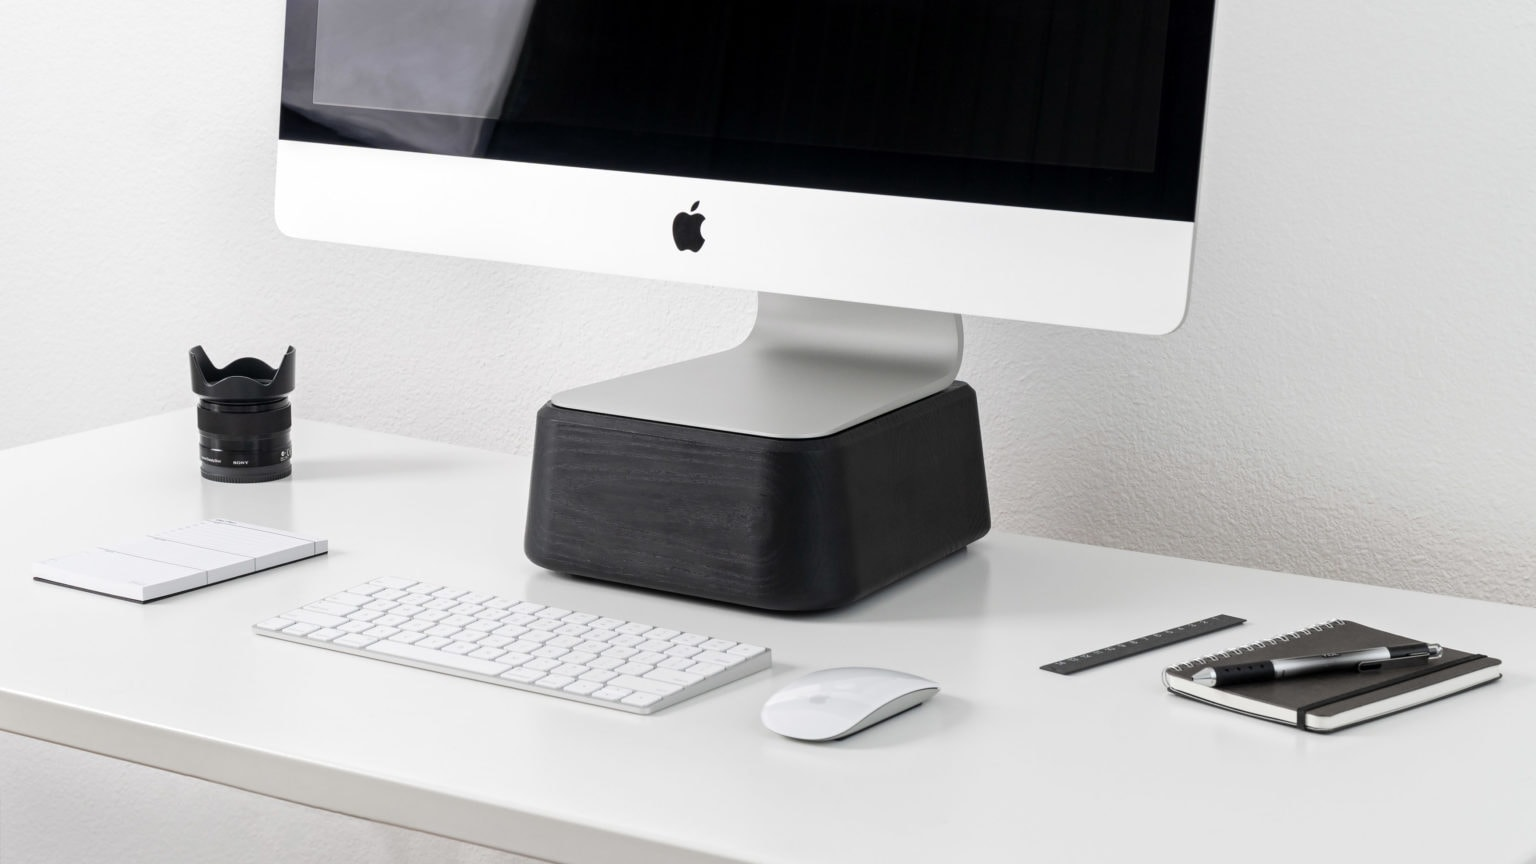 Base for iMac makes your desktop more ergonomic.